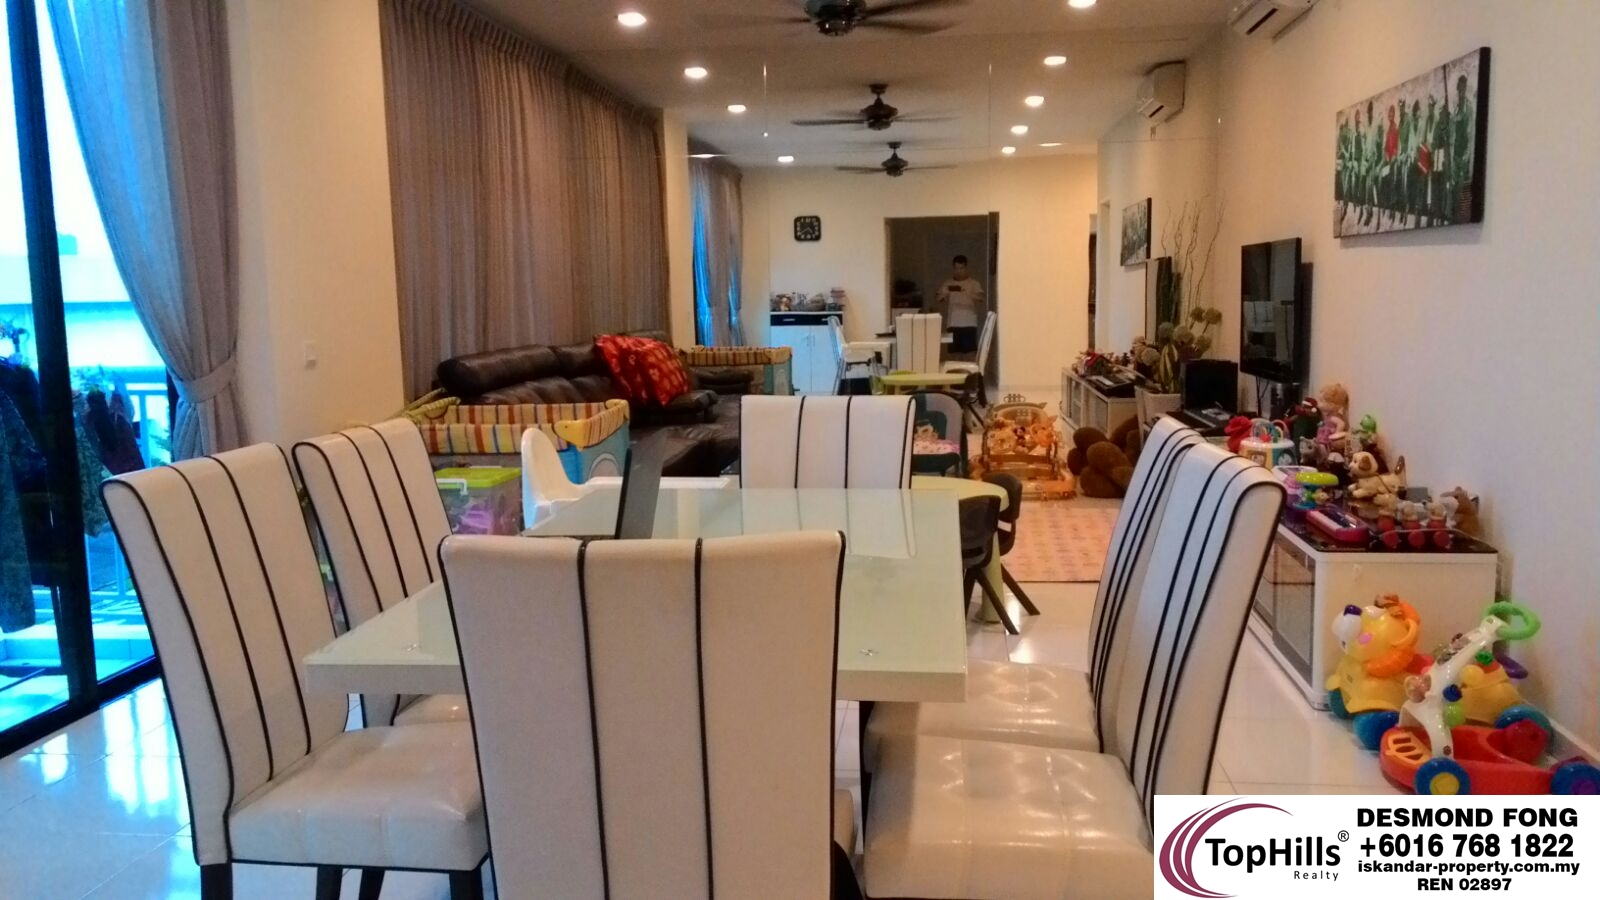 FULLY FURNISHED SKY EXECUTIVE SUITES APARTMENT FOR RENT